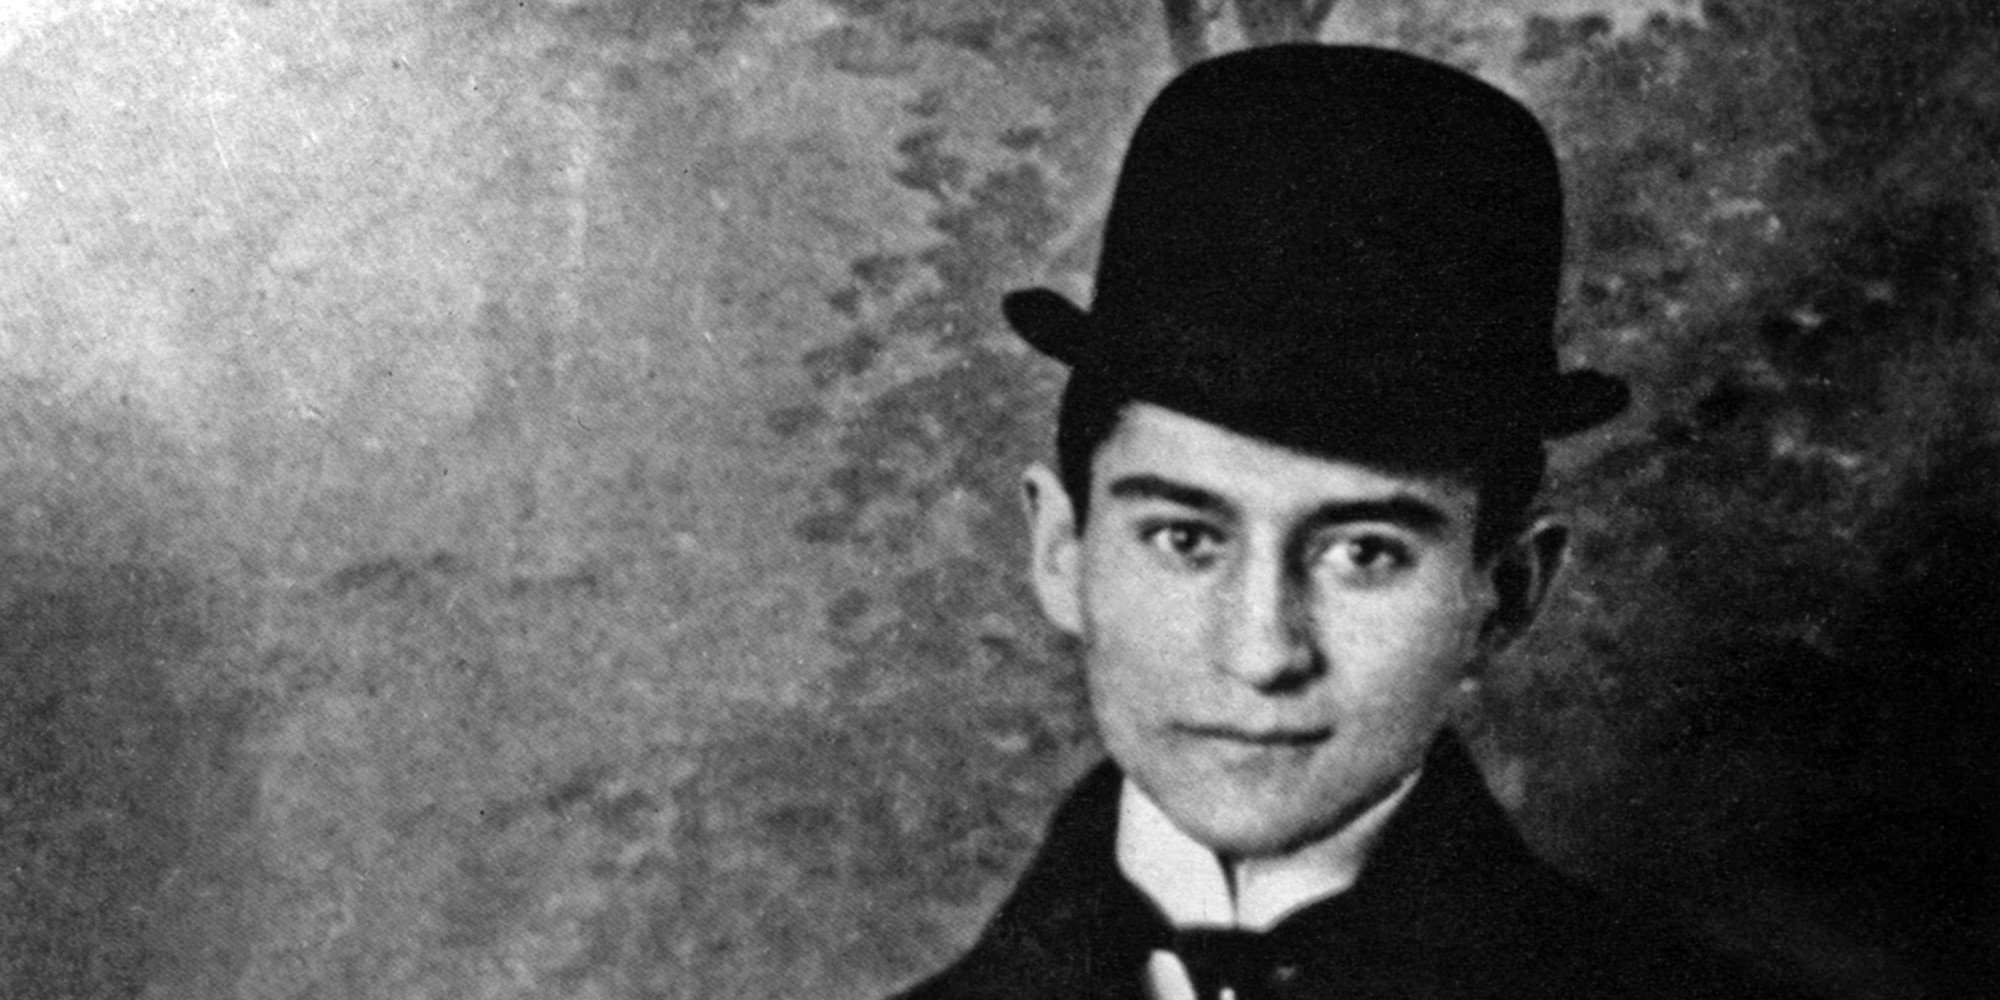 Kafka Birthday: A Letter From Franz Kafka To His Father